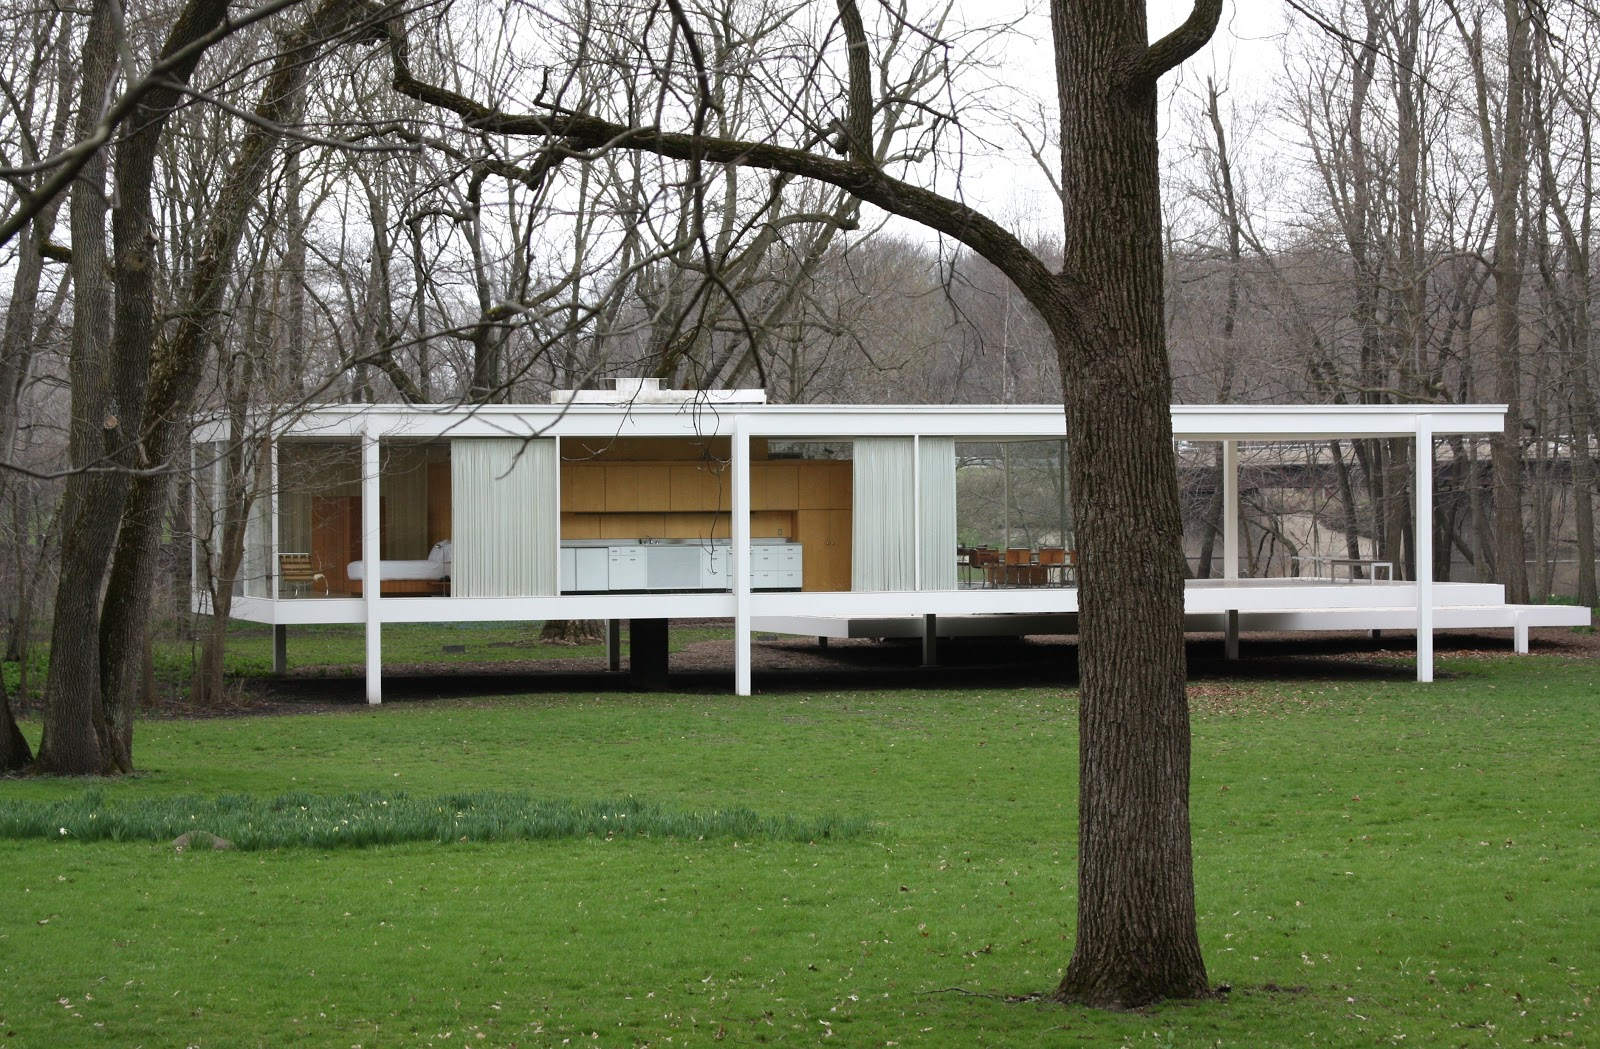 Artecase A Design Blog Philip Johnson 39 S Glass House 1949